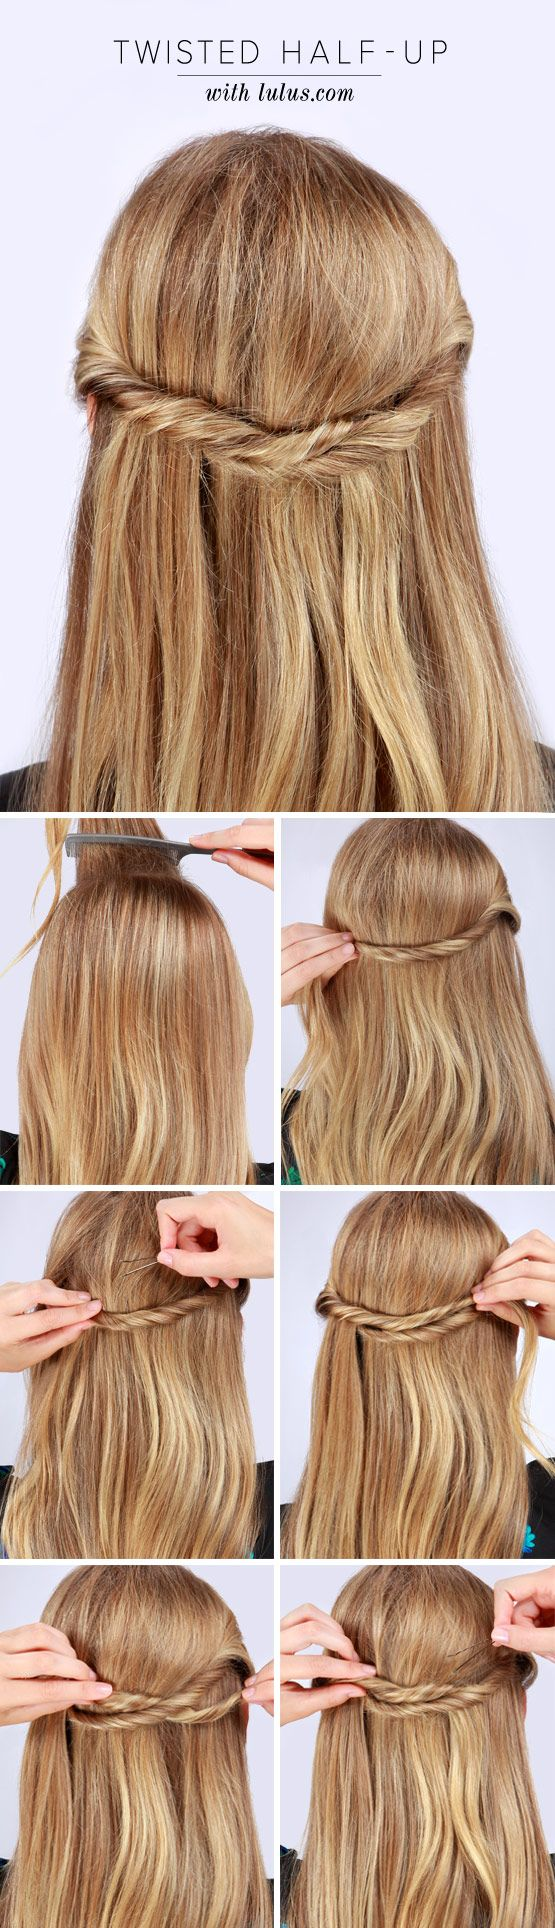 best hair ideas images on pinterest hairstyle ideas long hair